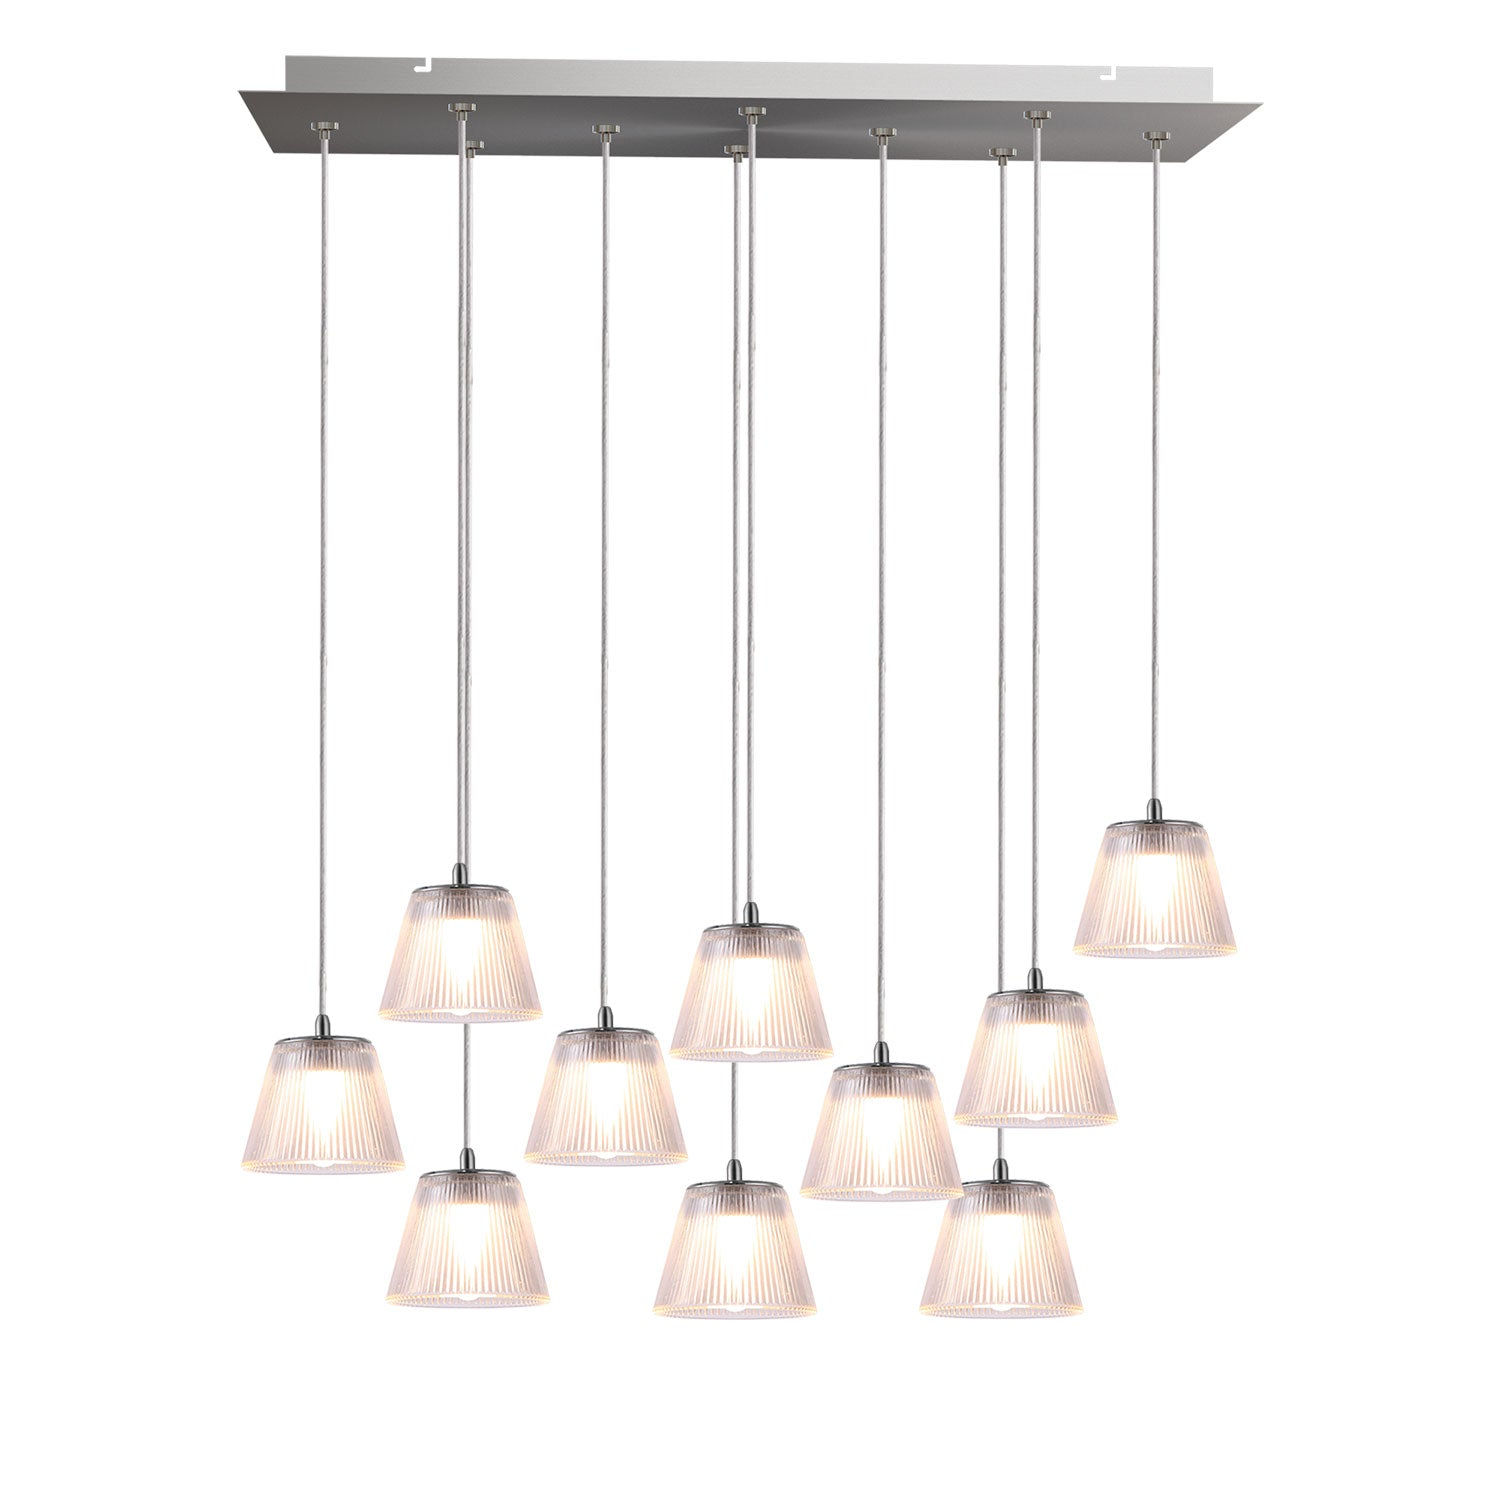 Unique LED modular pendants system. The only 100% modular LED lighting concept, wide selection of canopies, modular lighting, unique lighting fixtures for interior design, kitchen island, living room lighting.